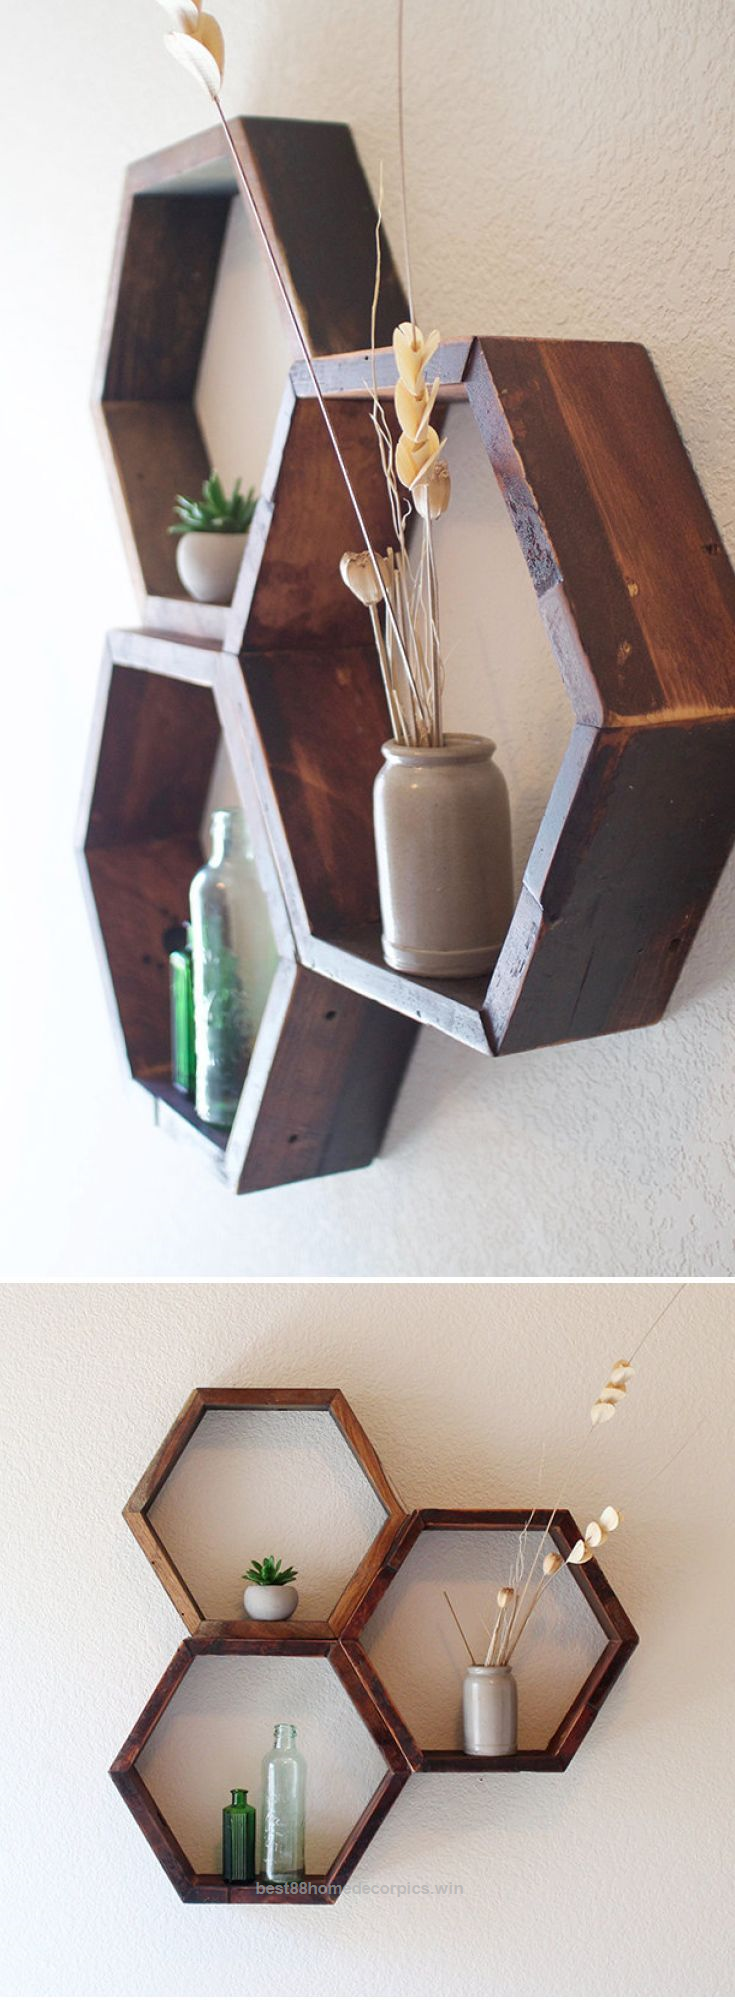 Wooden Crafts To Make And Sell Rustic Wood Decor Ideas Holiday Wood